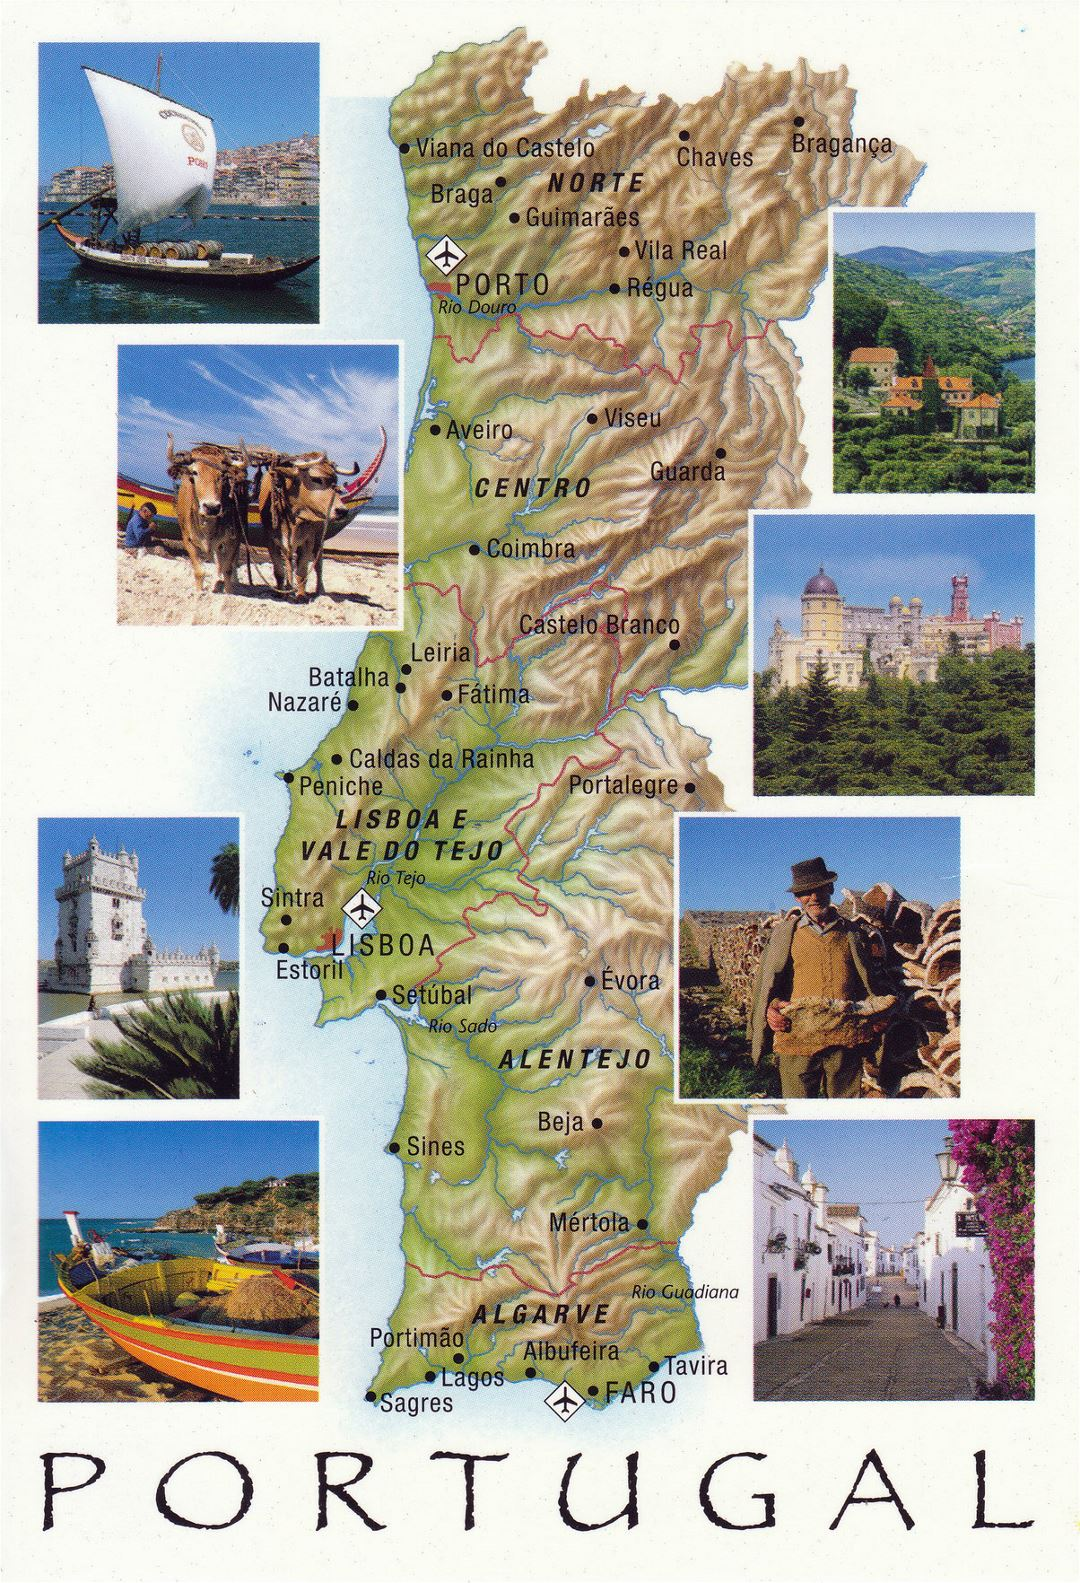 Large tourist map of Portugal with relief, cities and airports